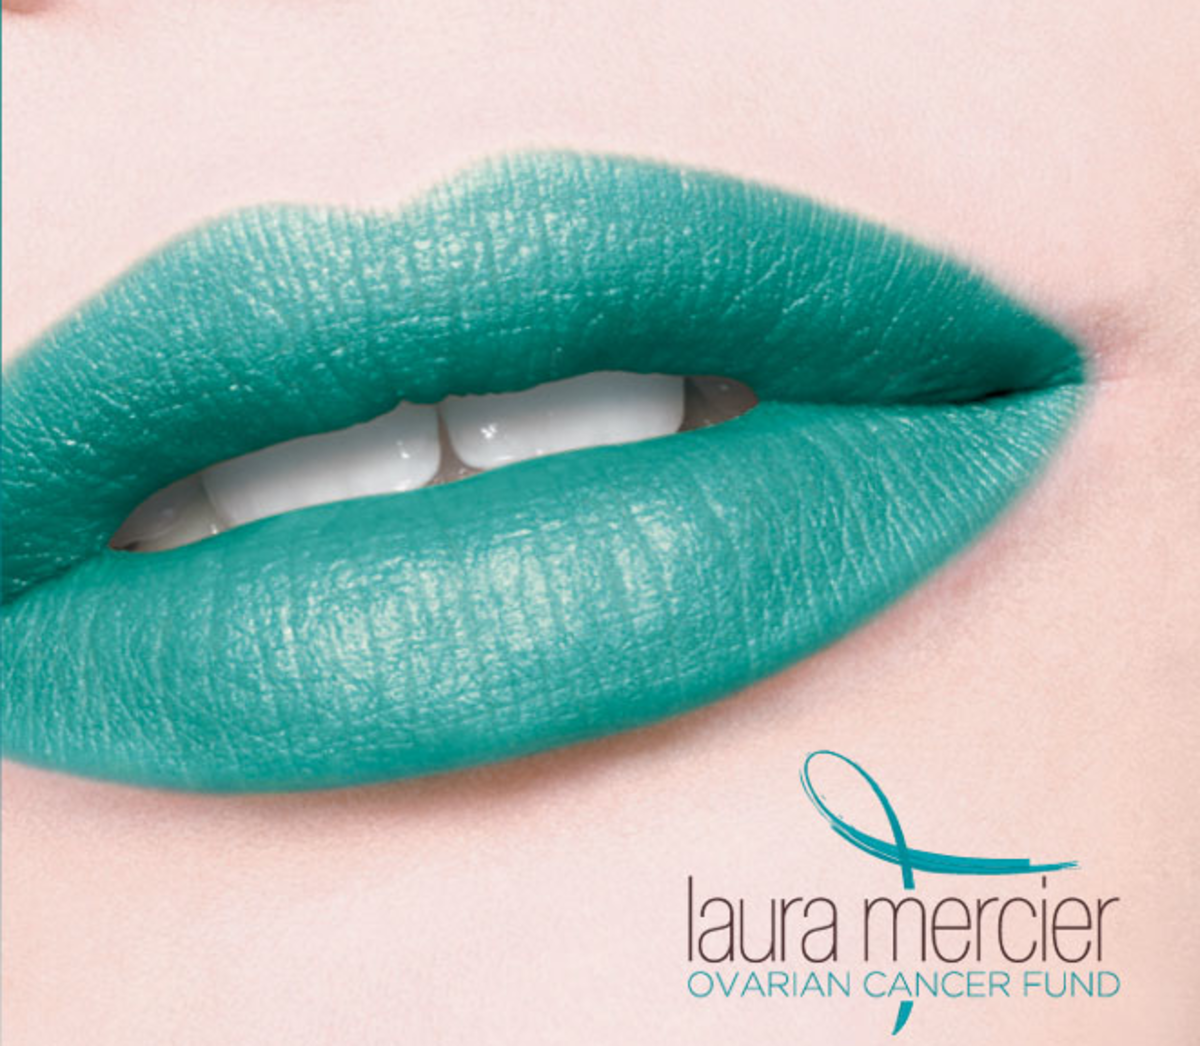 Laura Mercier Ovarian Cancer Fund